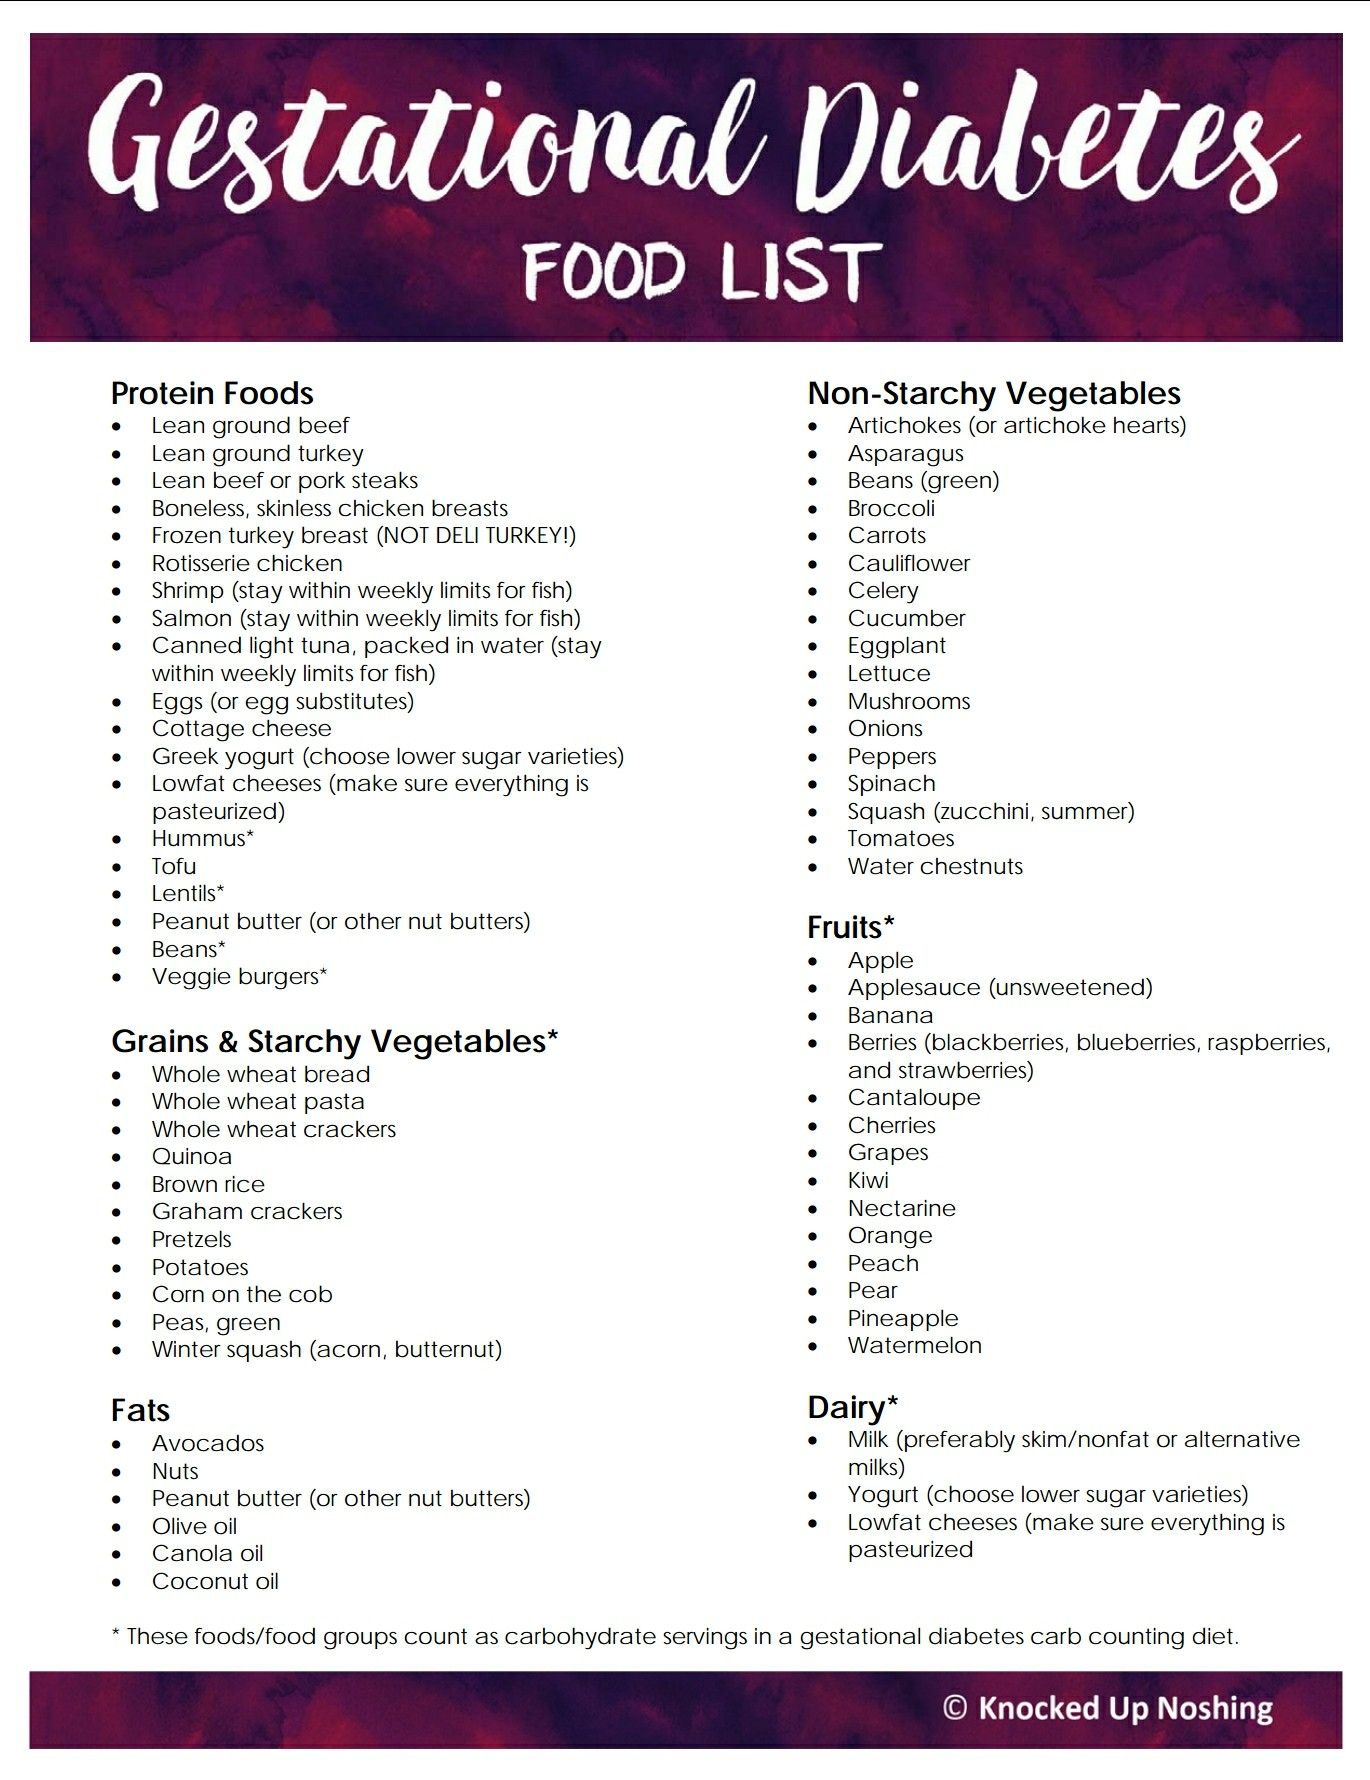 Diabetic Diet List Gestational Diabetes f...